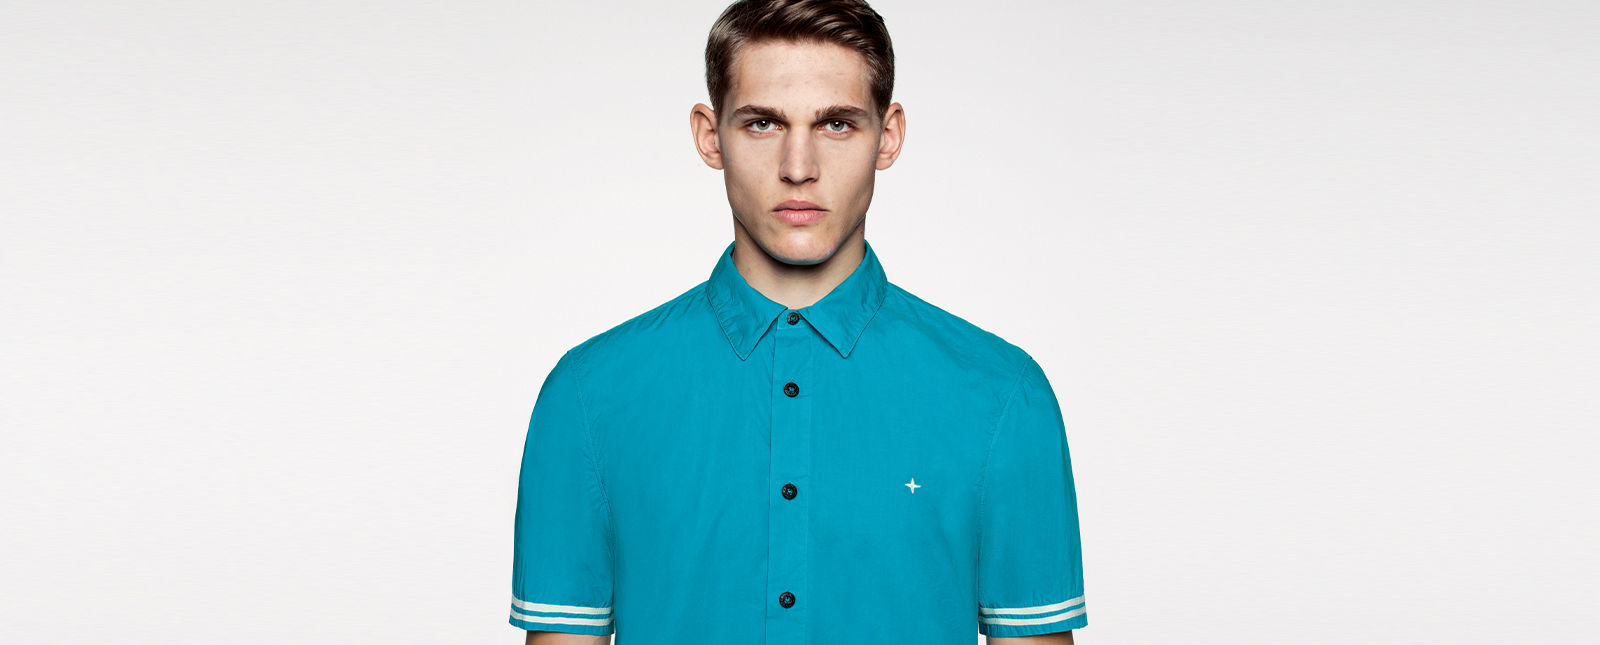 Portrait shot of a model wearing a blue short sleeved shirt with black buttons, white stripe details on the sleeves, and a white Stone Island stella on the chest.